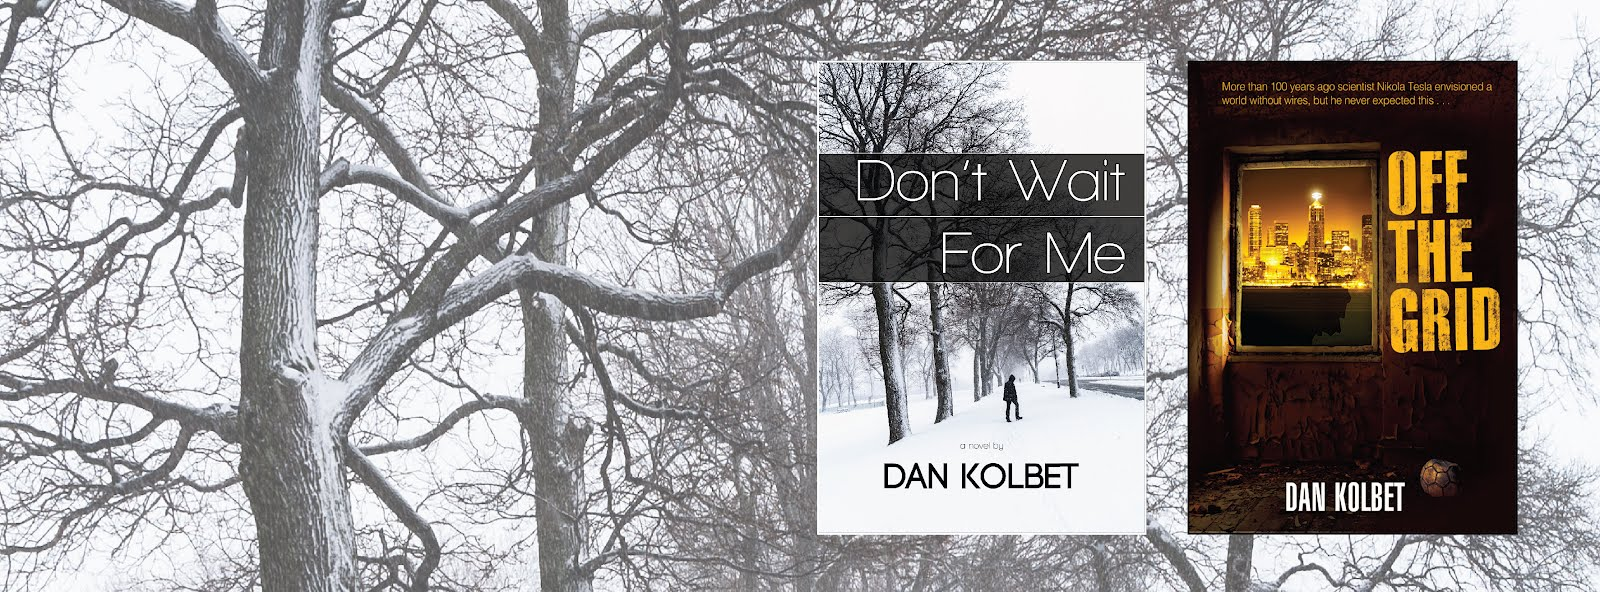 Dan Kolbet